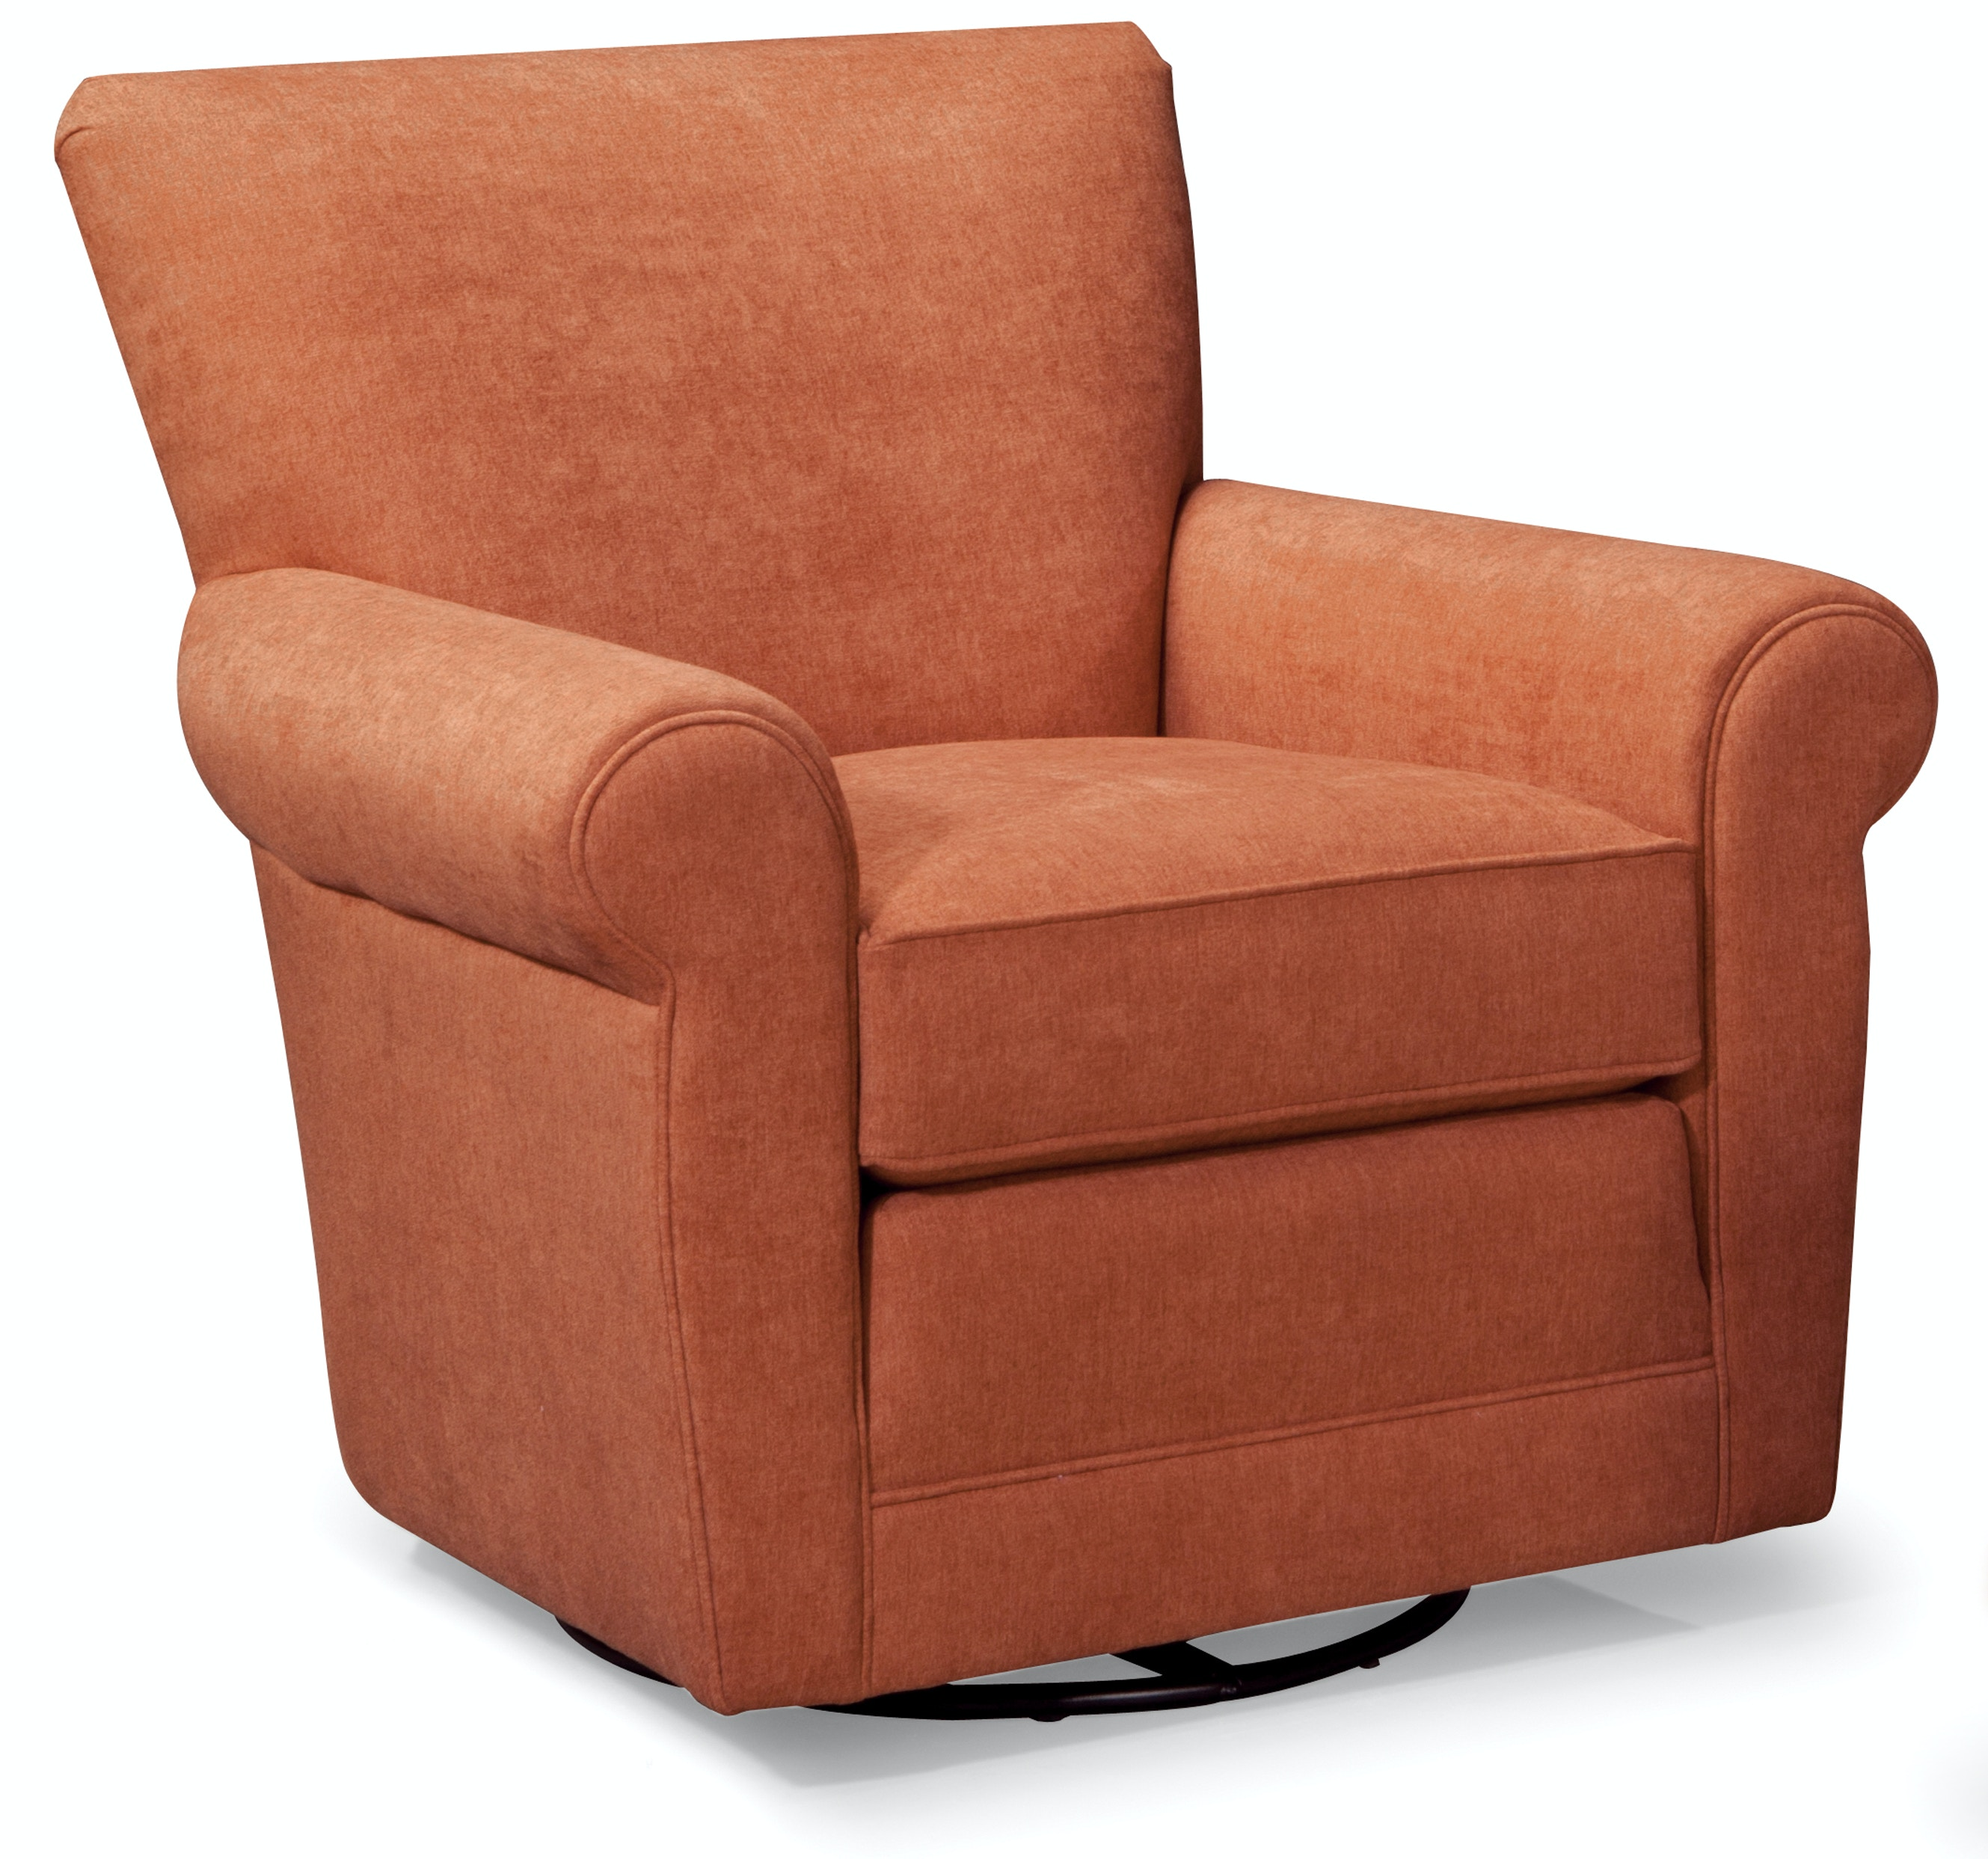 smith brothers swivel glider chair